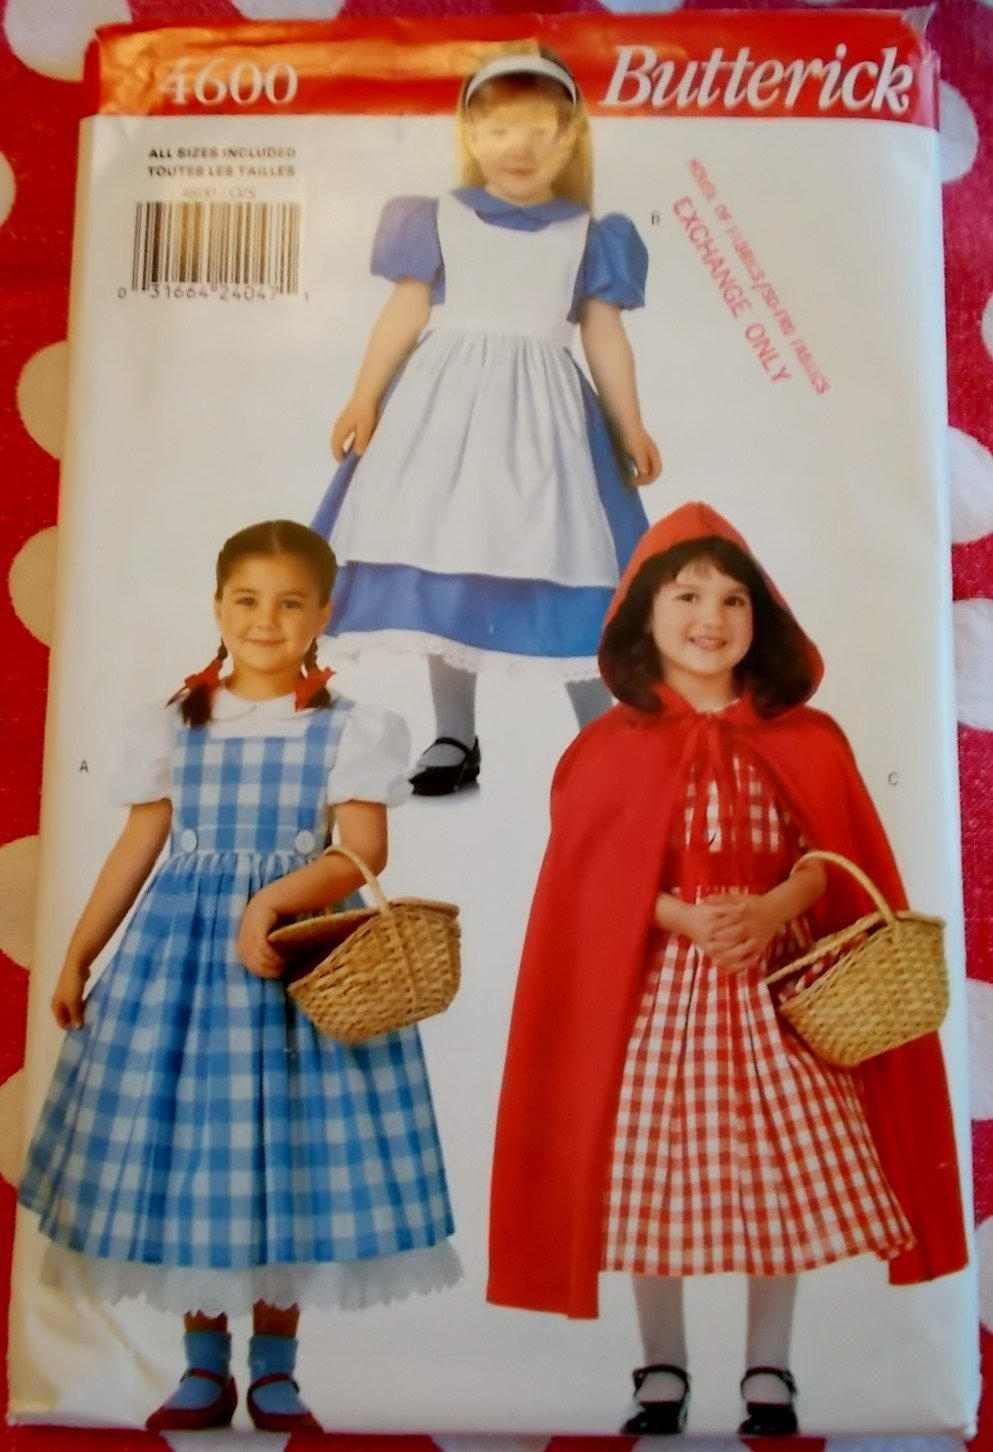 Alice, Red Riding Hood, Dorothy Costumes Butterick 4600 Pattern, Sz XS To L, Uncut